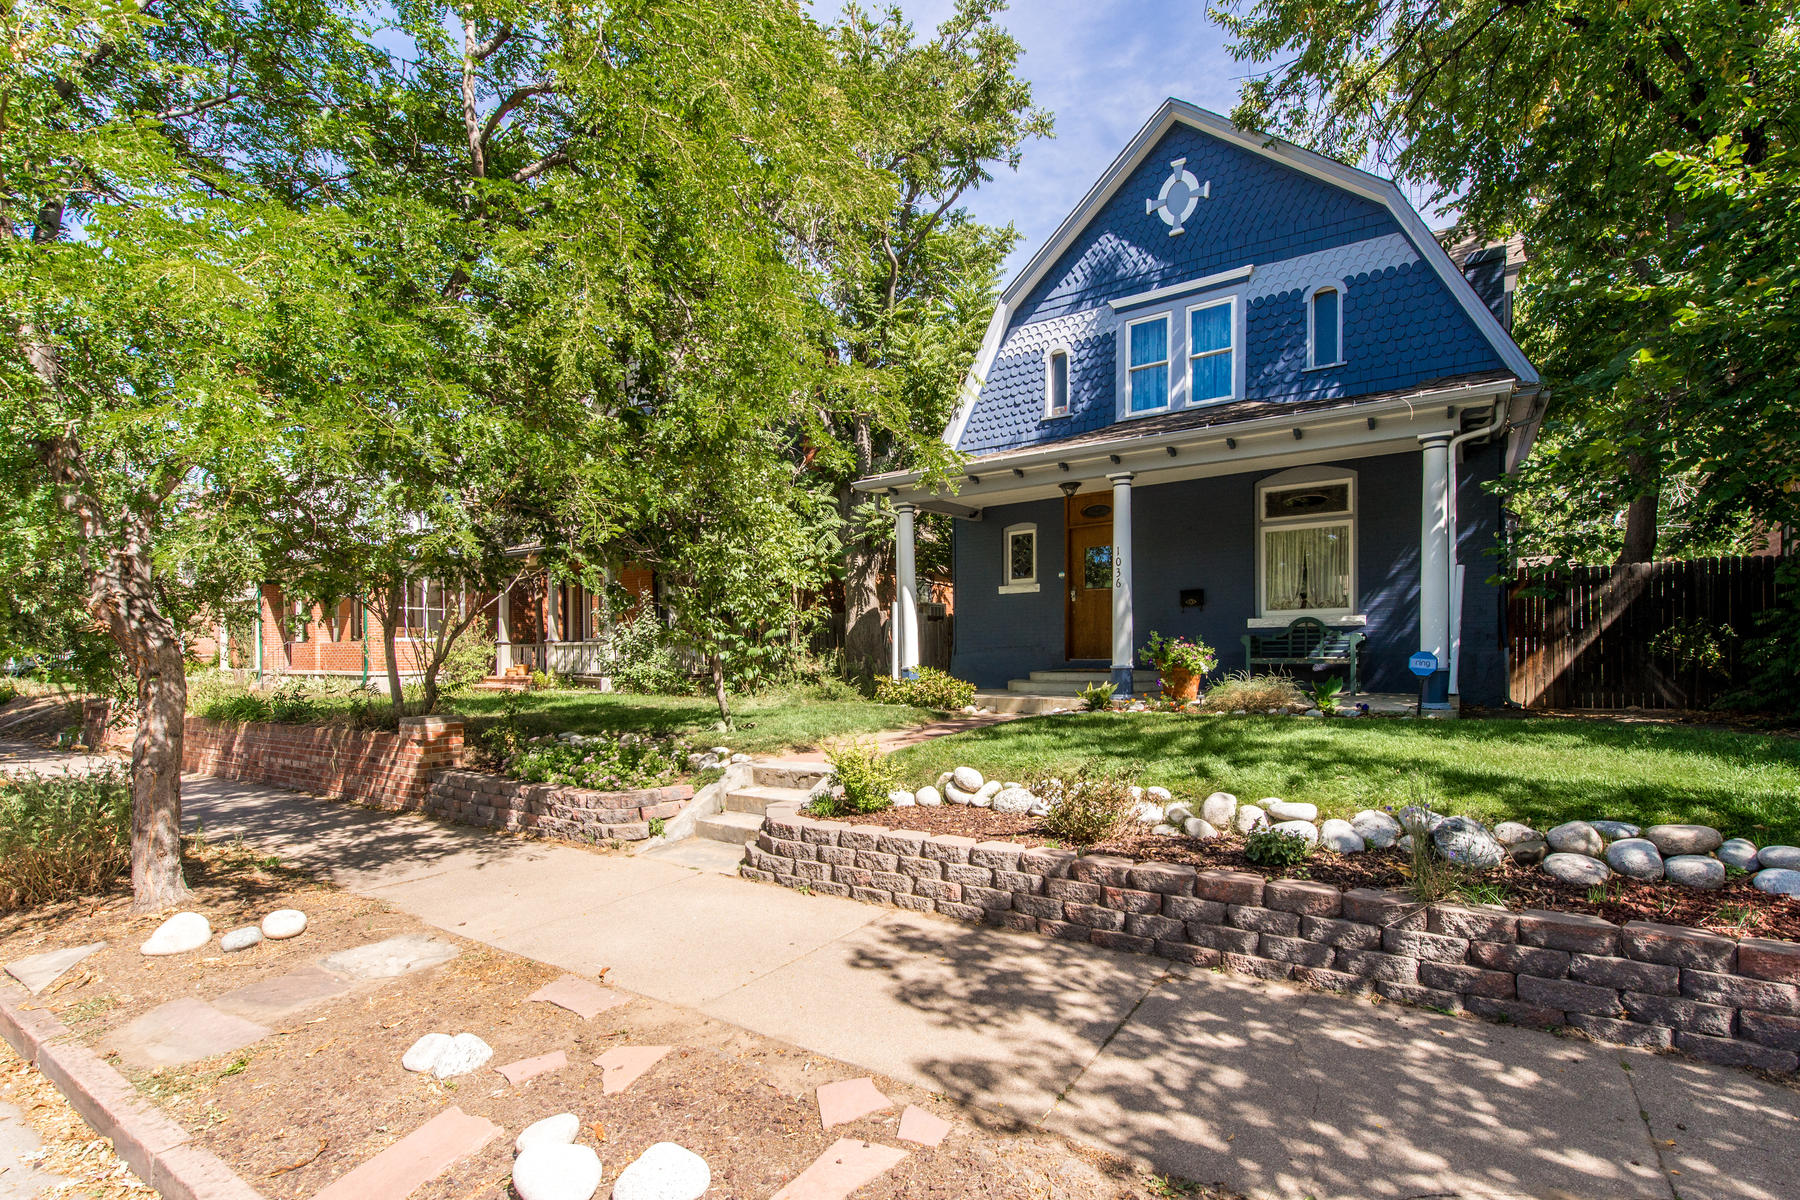 Single Family Home for Active at Turn Of The Century Victorian Charmer Perfectly Situated In Washington Park West 1036 South Pearl Street Denver, Colorado 80209 United States